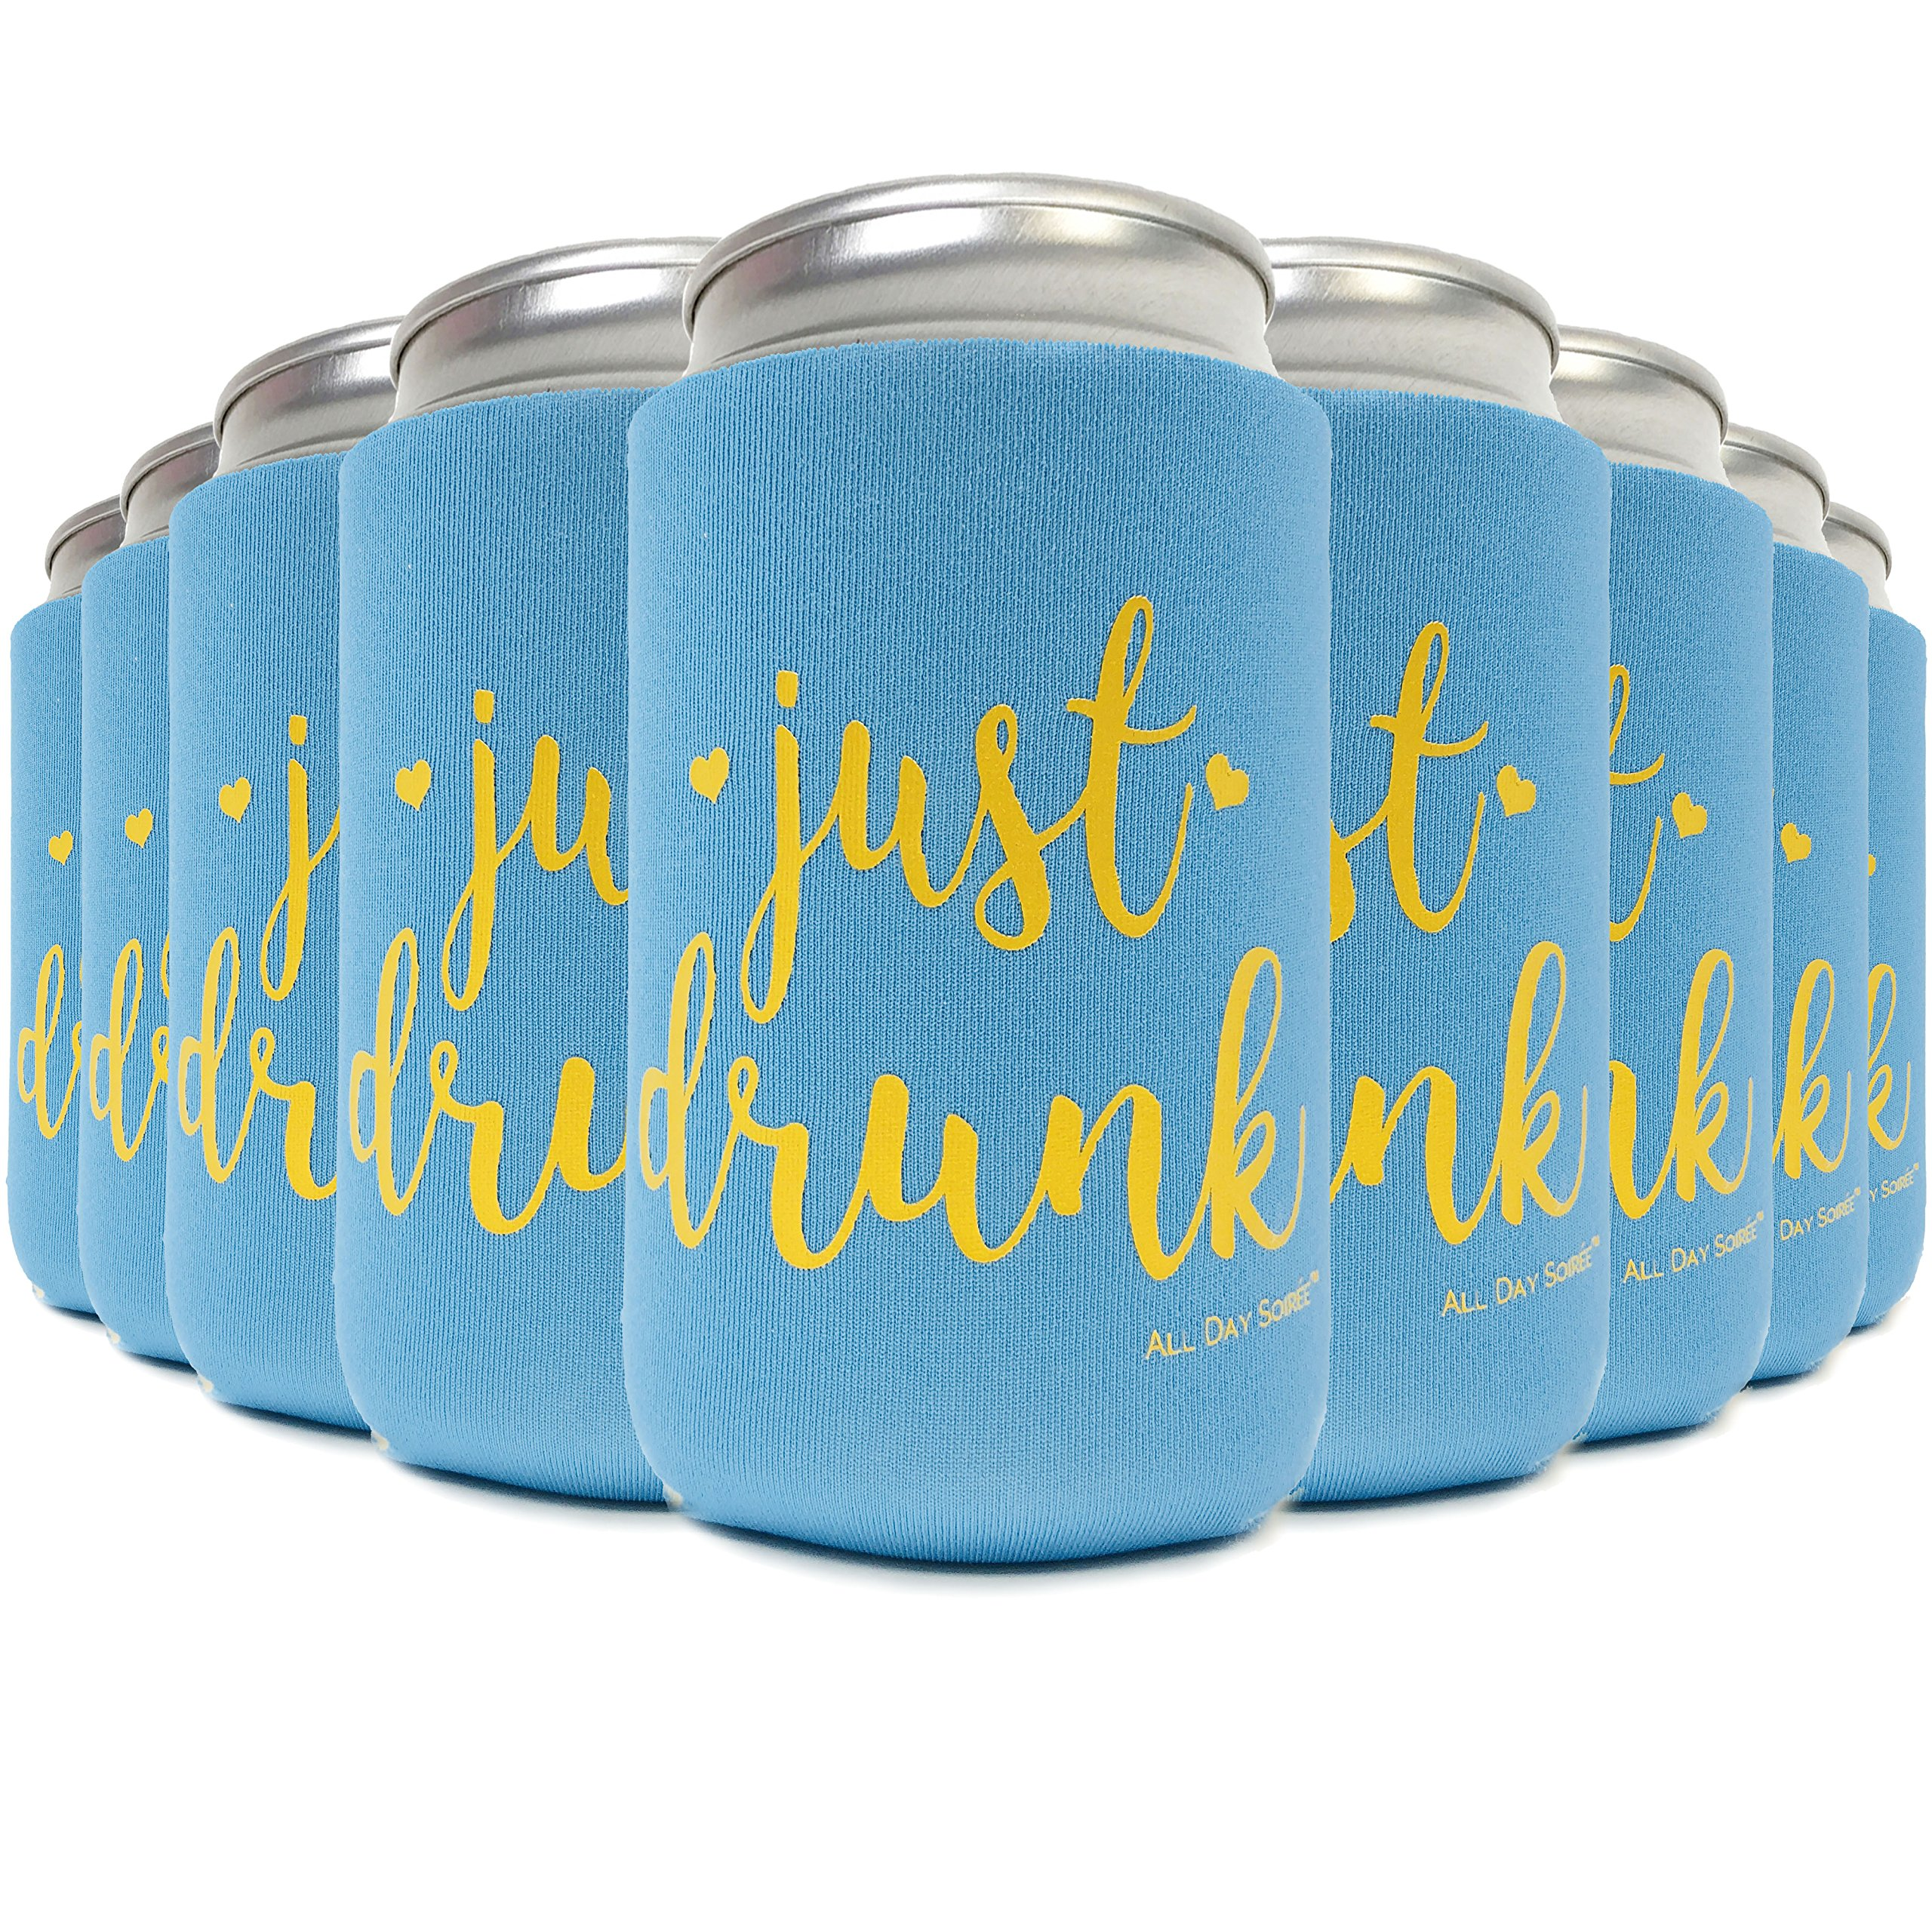 Drunk in Love + JUST Drunk 11 Pack Bachelorette Party Favor Can Coolers Plus Bonus Photo Game | 10 Tiffany Mermaid Blue, 1 White Bride, Gold Ink | Decorations, Supplies, Gifts